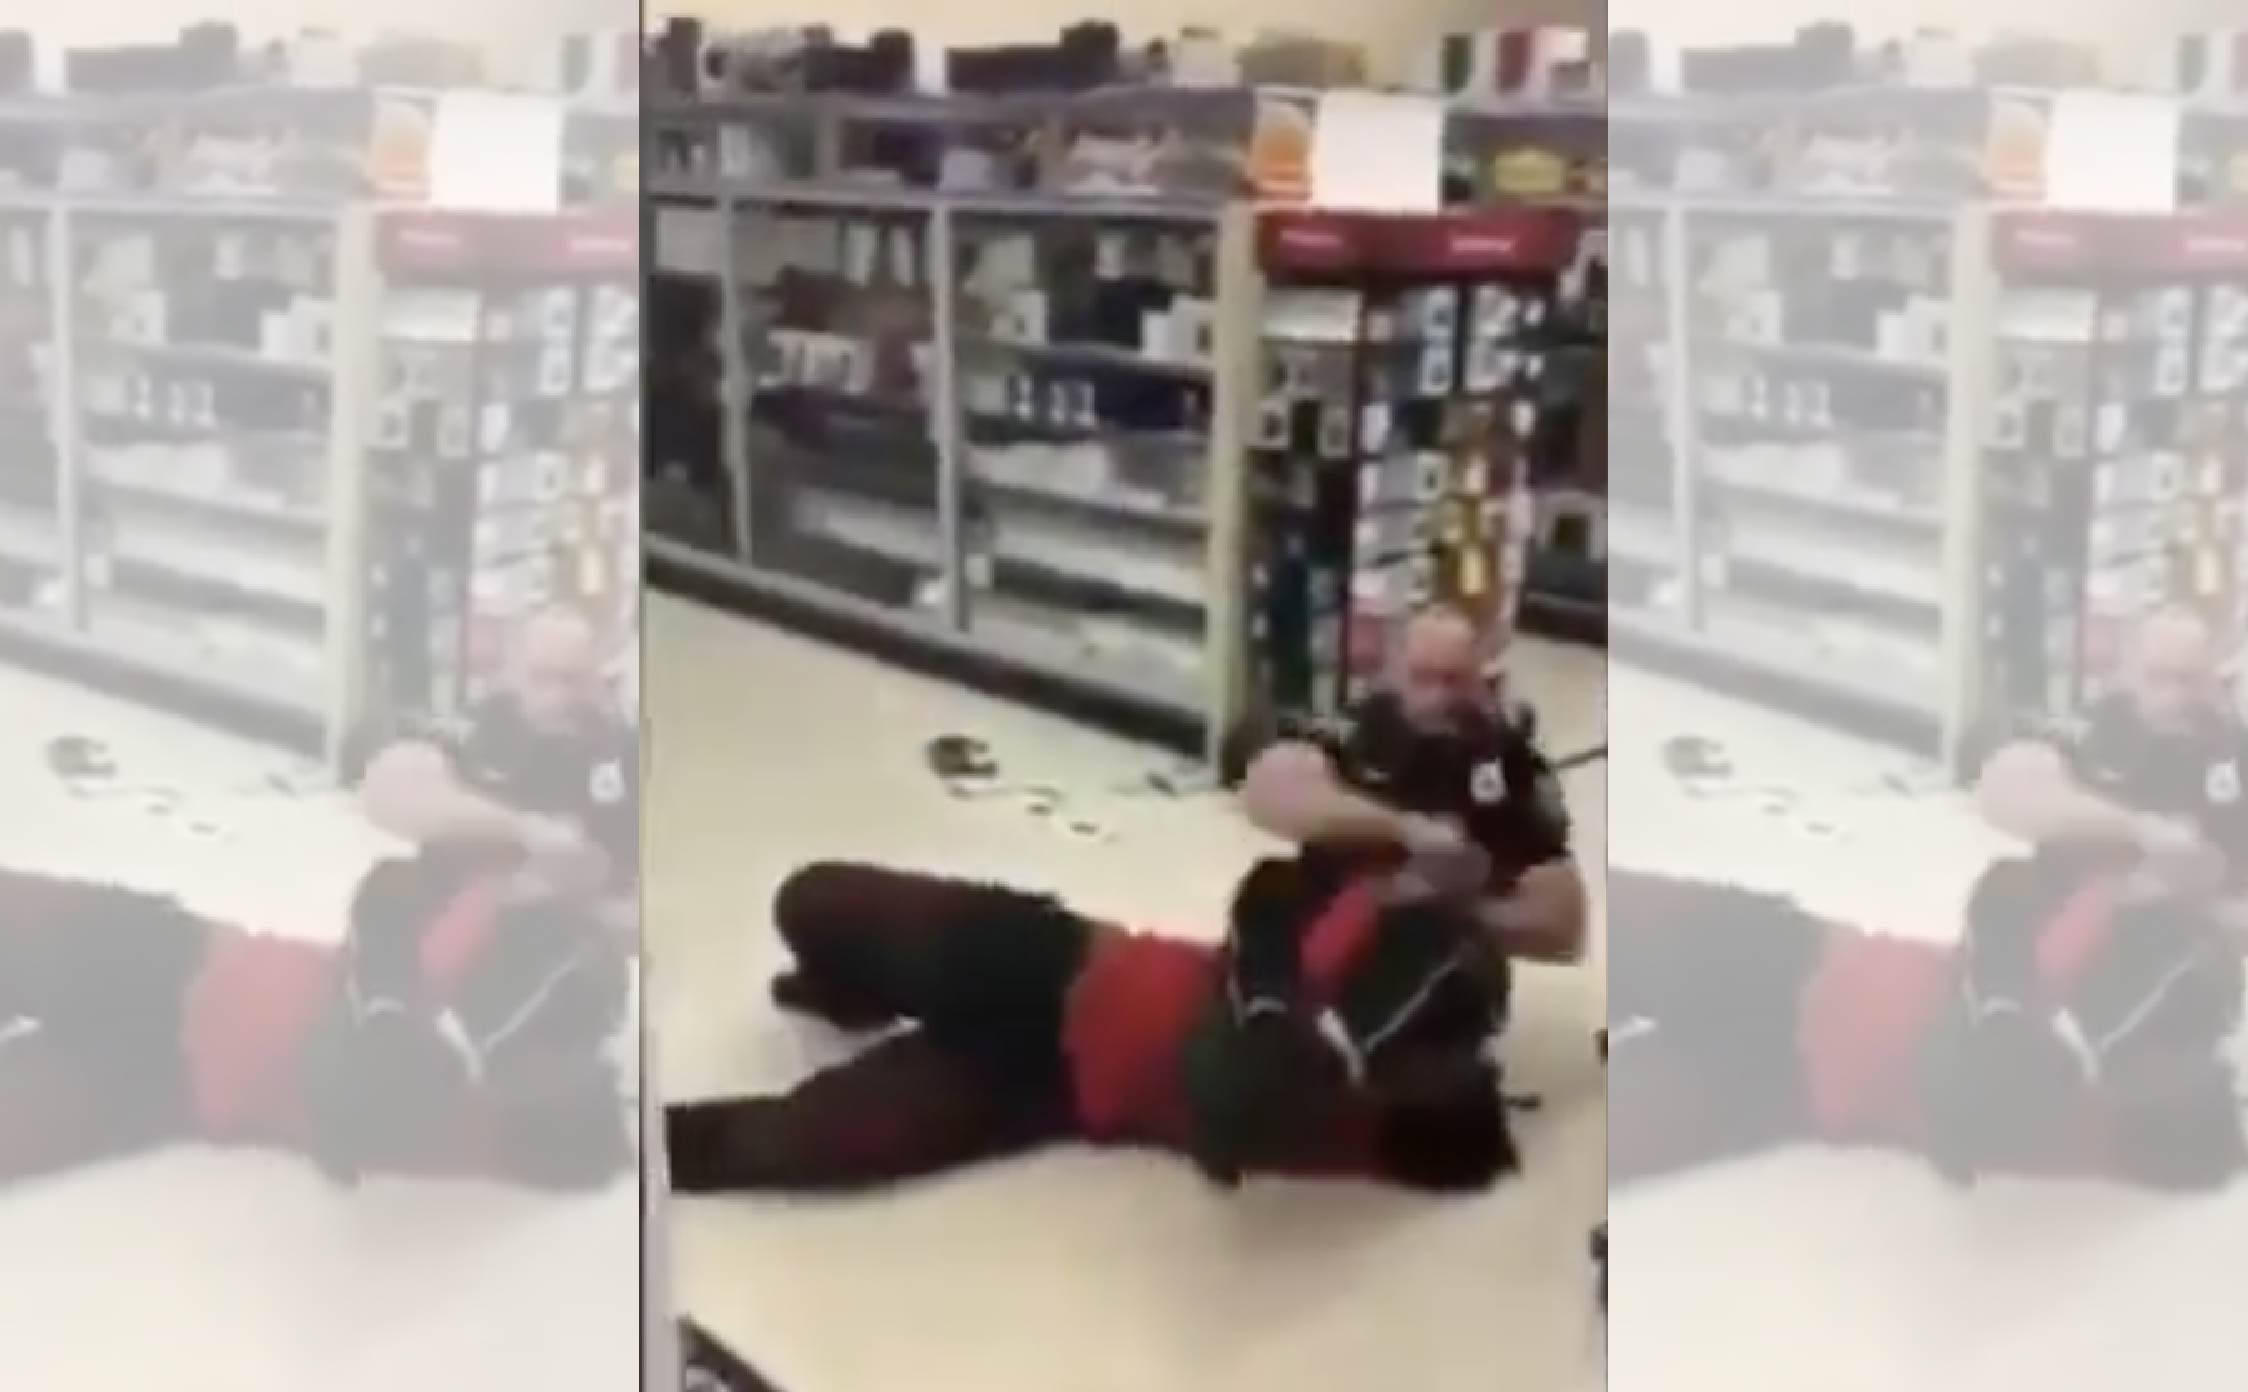 [VIDEO] This Cop Masterfully Uses Ju Jitsu Moves to Handcuff a Violent Perp With His Legs